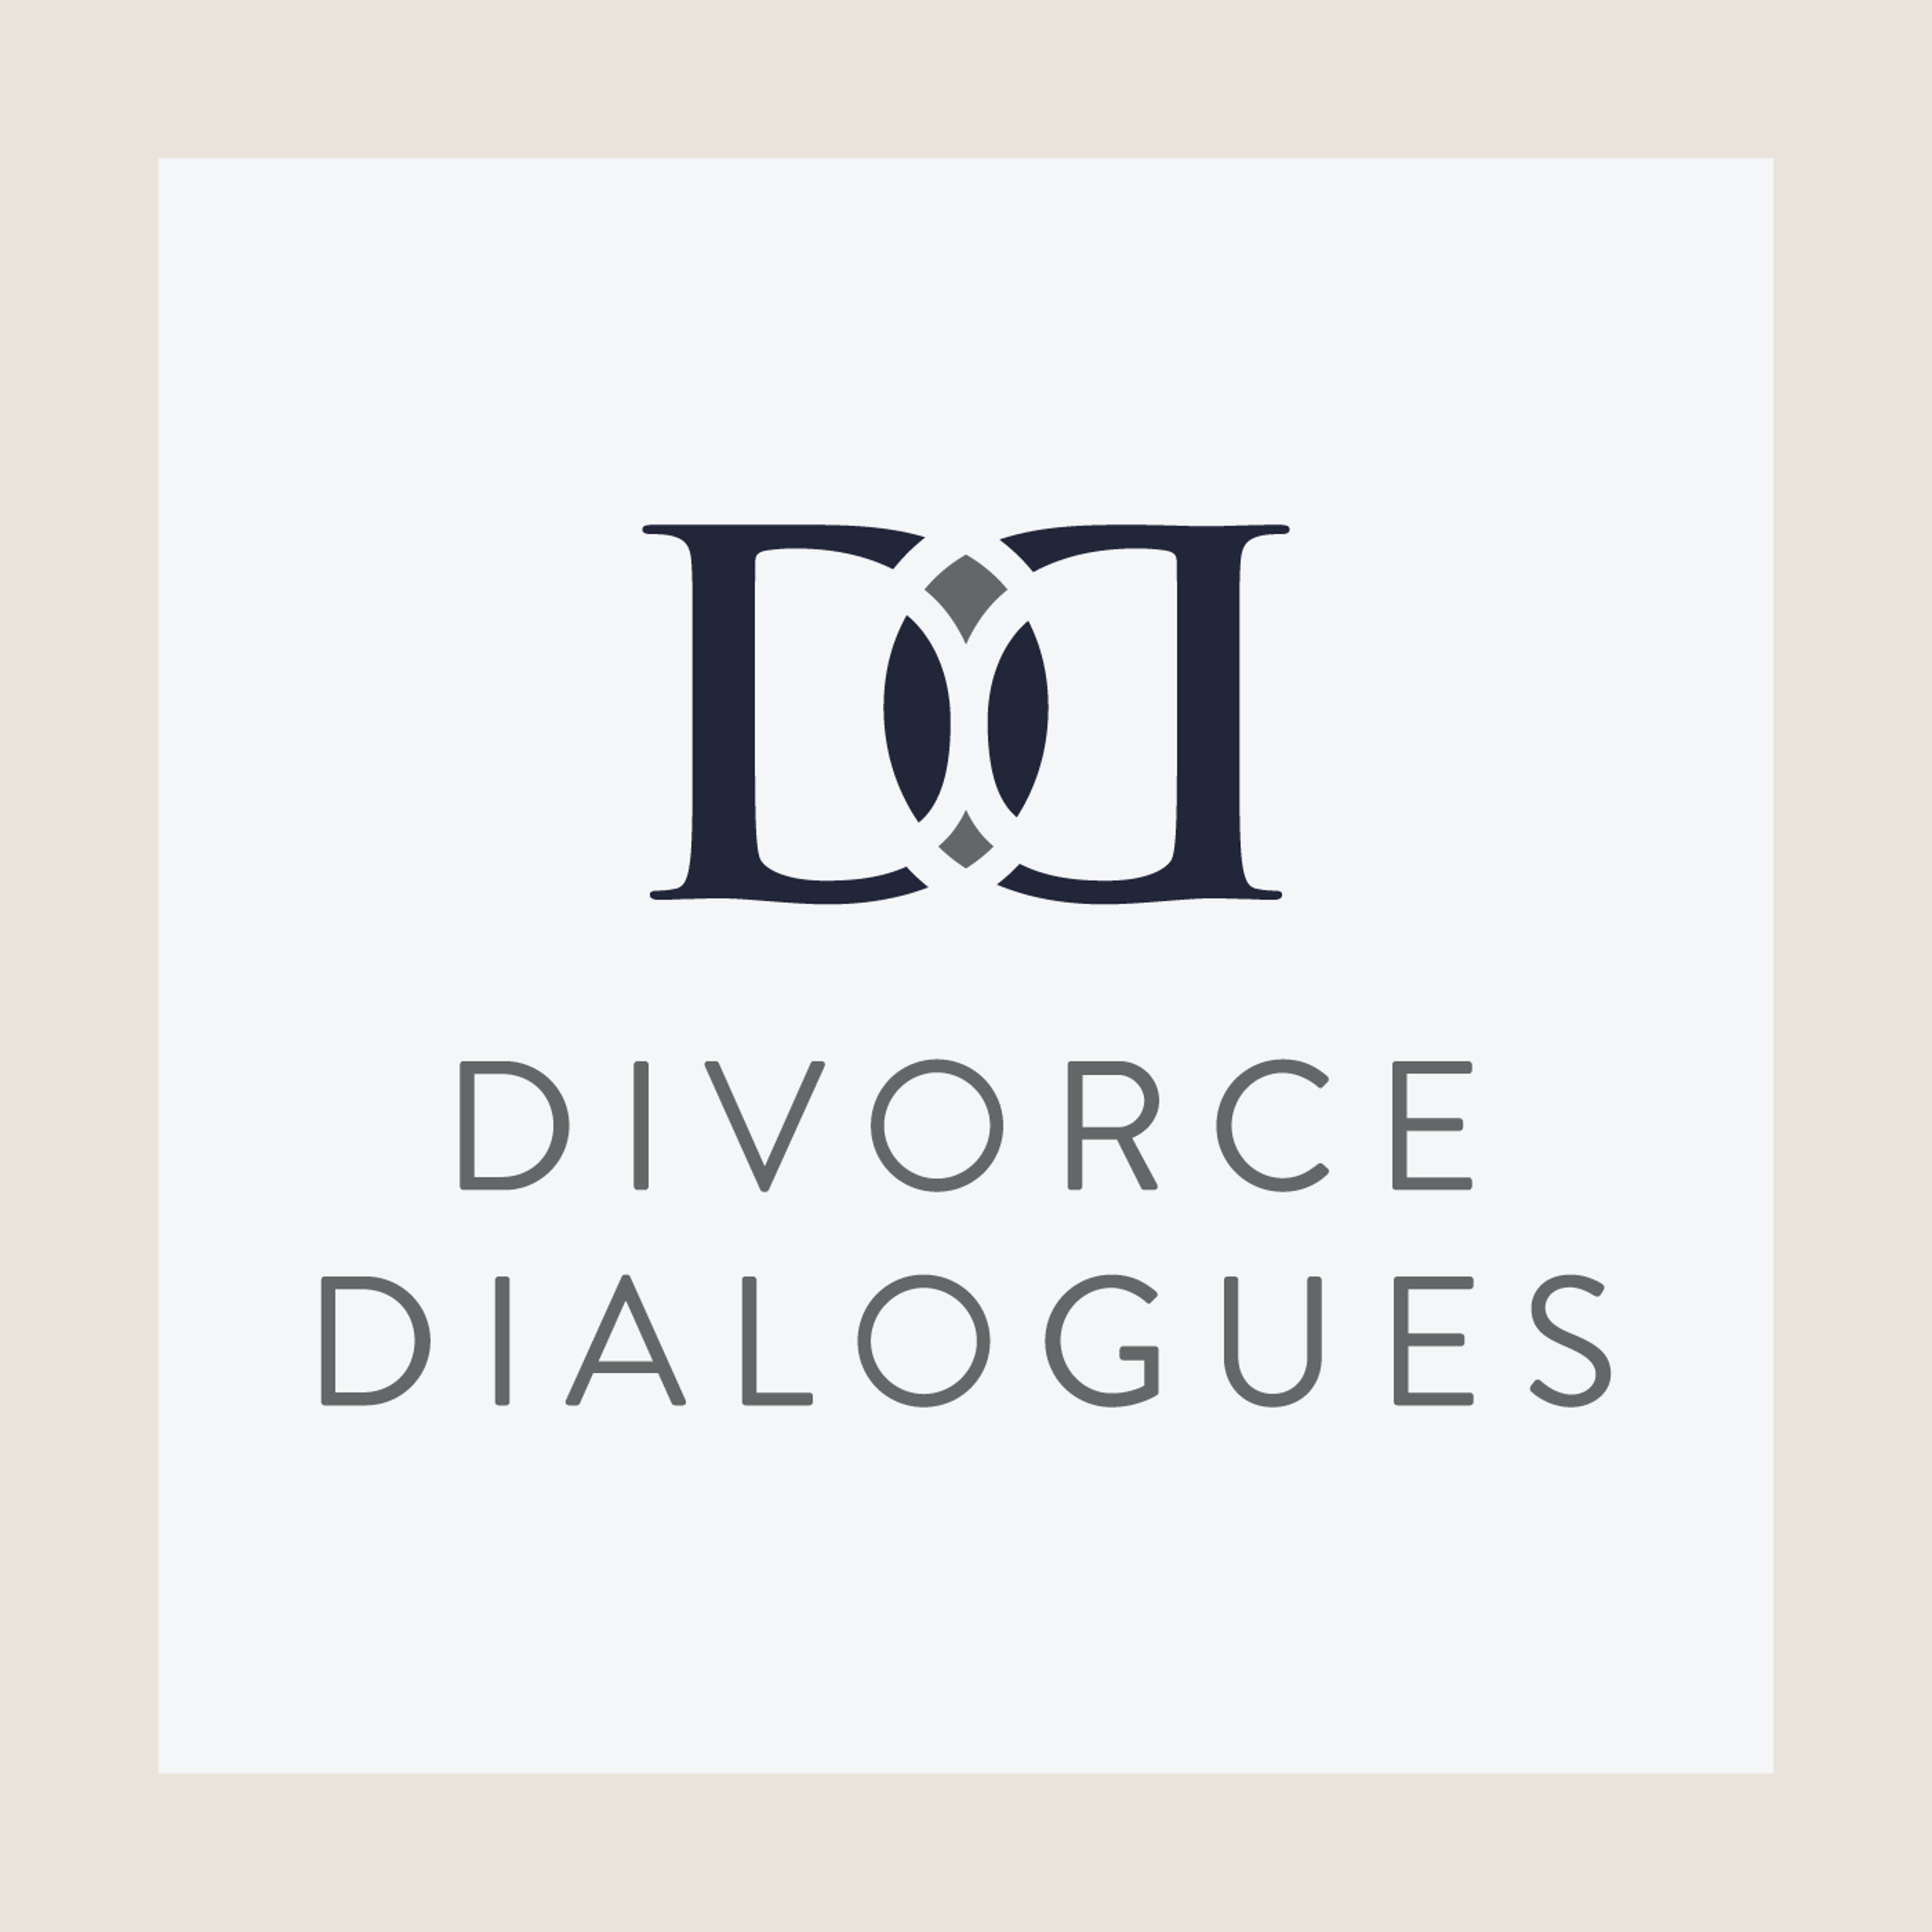 Divorce Dialogues - The 6 Keys to Mindful Co-Parenting with Dr. Jeremy Gaies